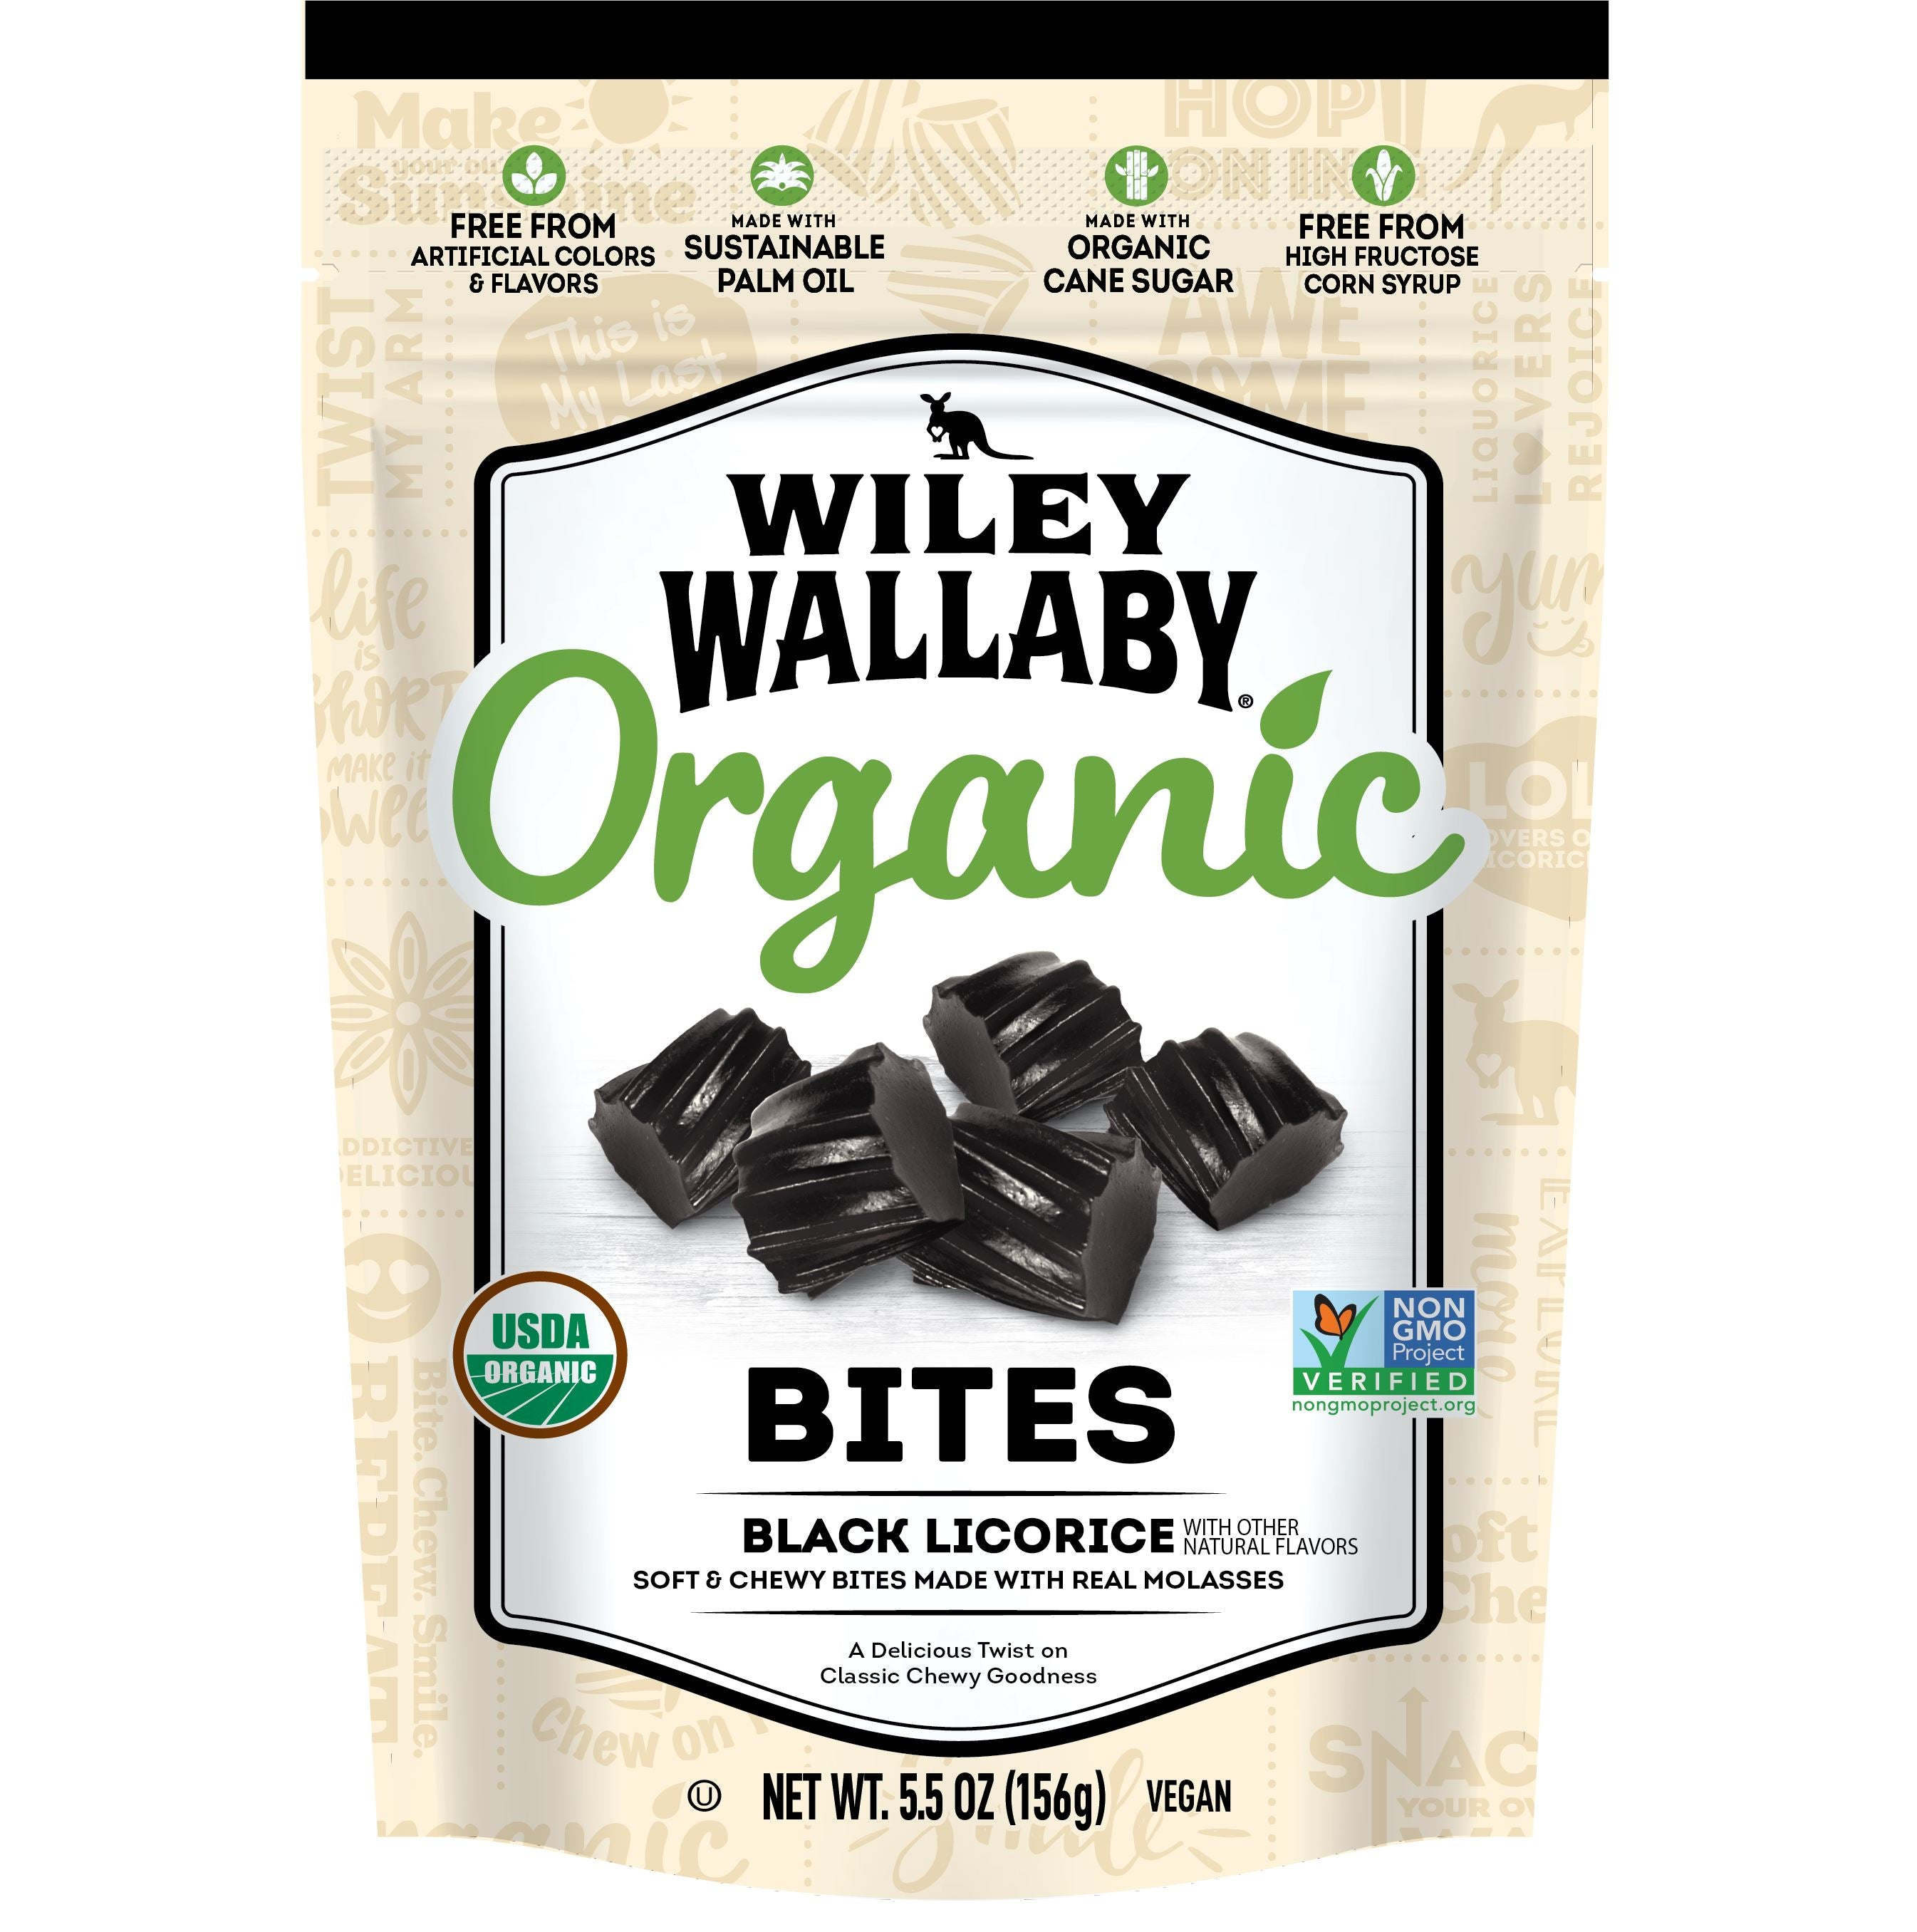 Wiley Wallaby Licorice Wiley Wallaby Organic Black 6 Ounce